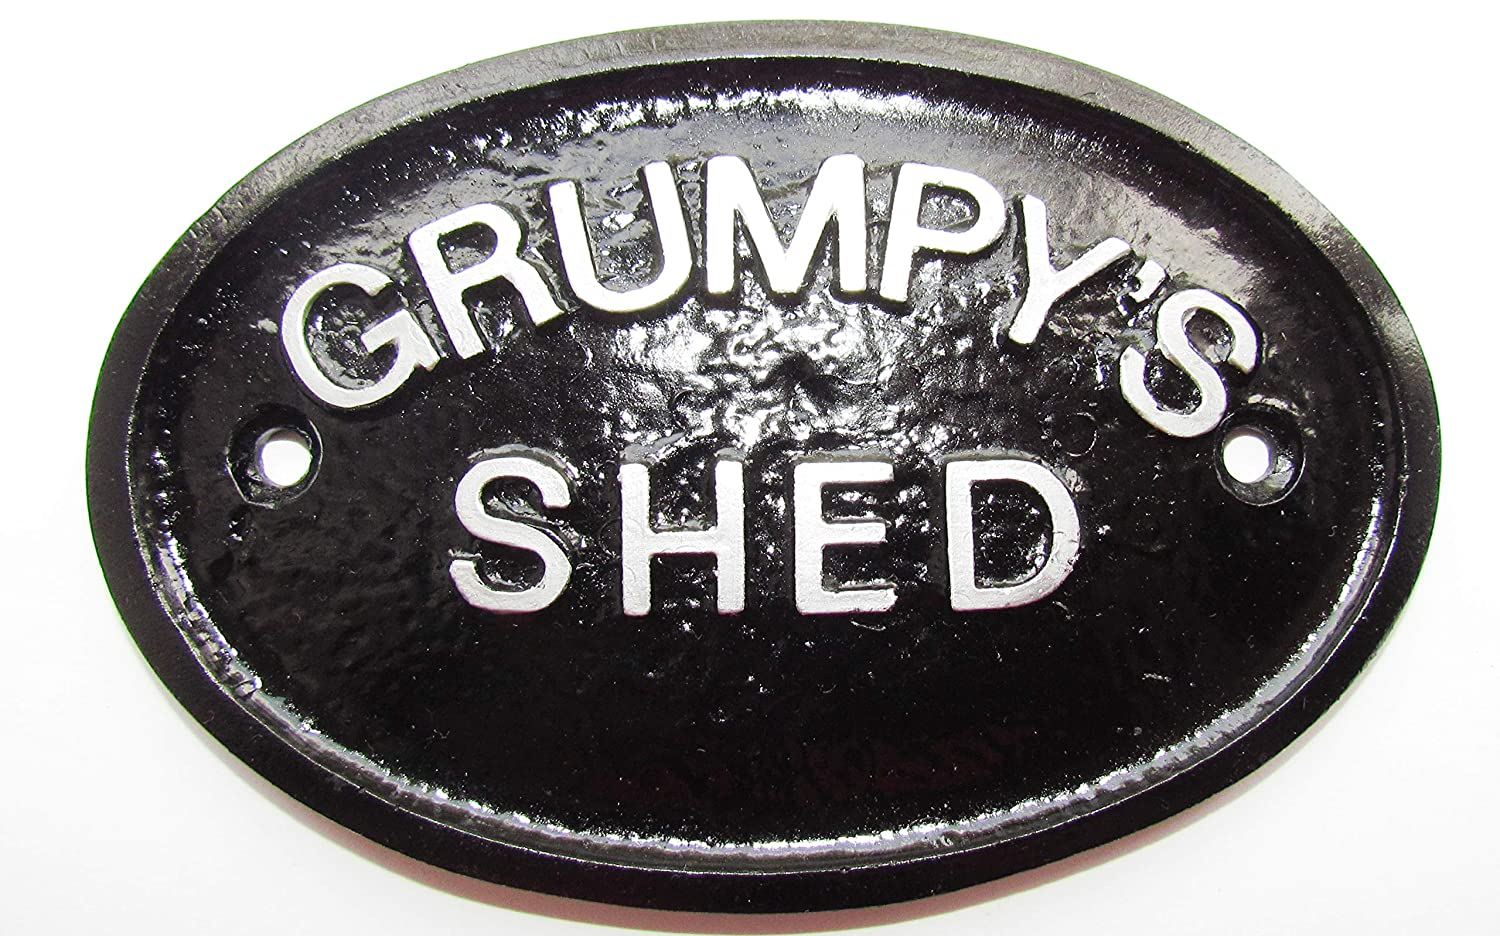 Artisan Silver Grumpy's Shed Workshop Door Sign in Black With Silver Raised Lettering Home Works